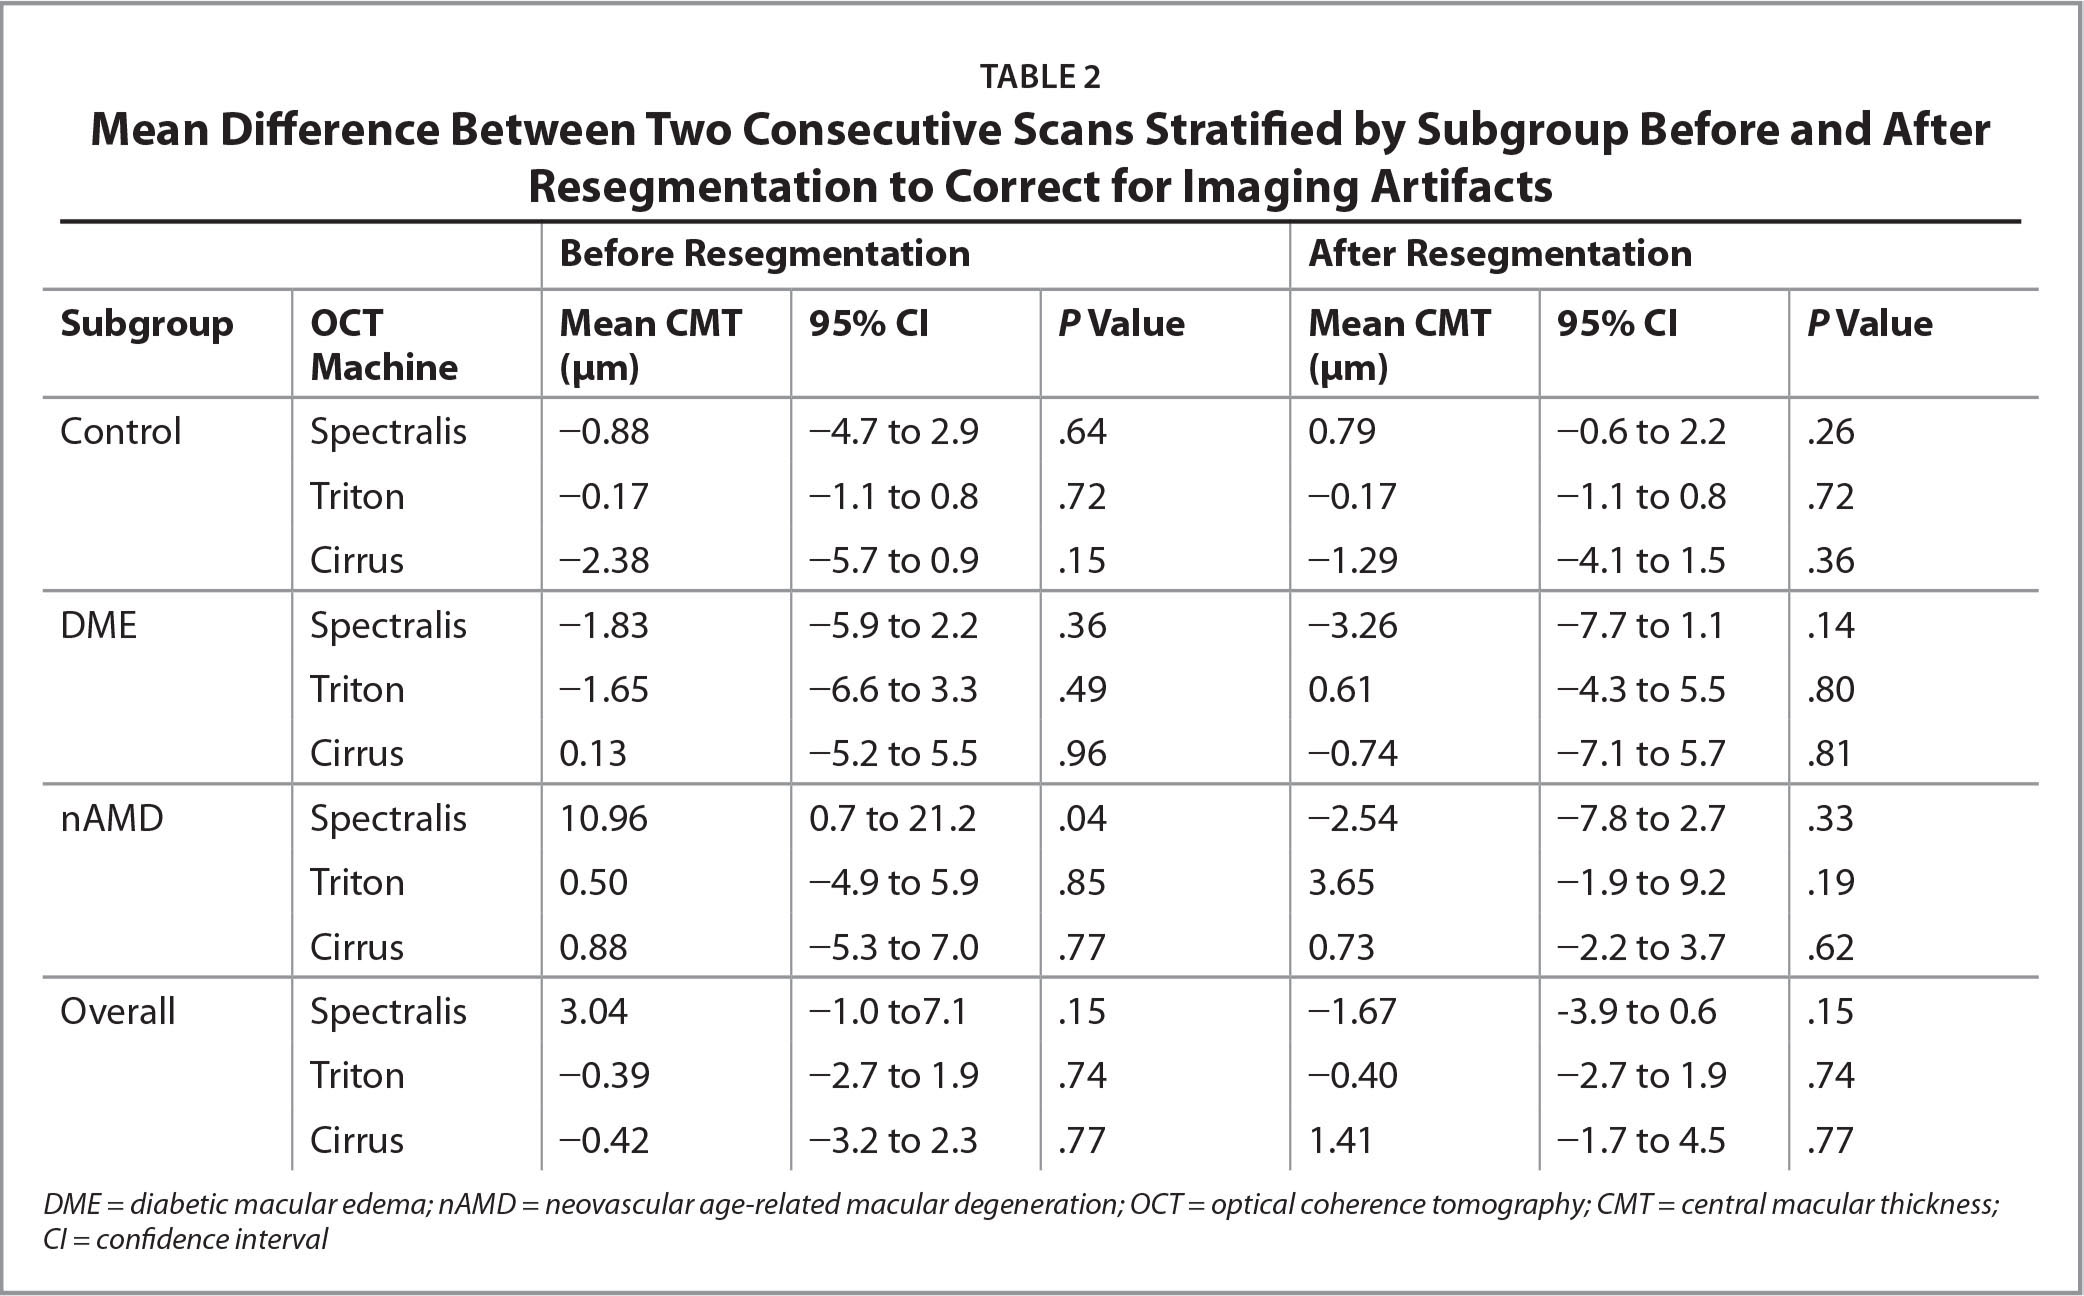 Mean Difference Between Two Consecutive Scans Stratified by Subgroup Before and After Resegmentation to Correct for Imaging Artifacts